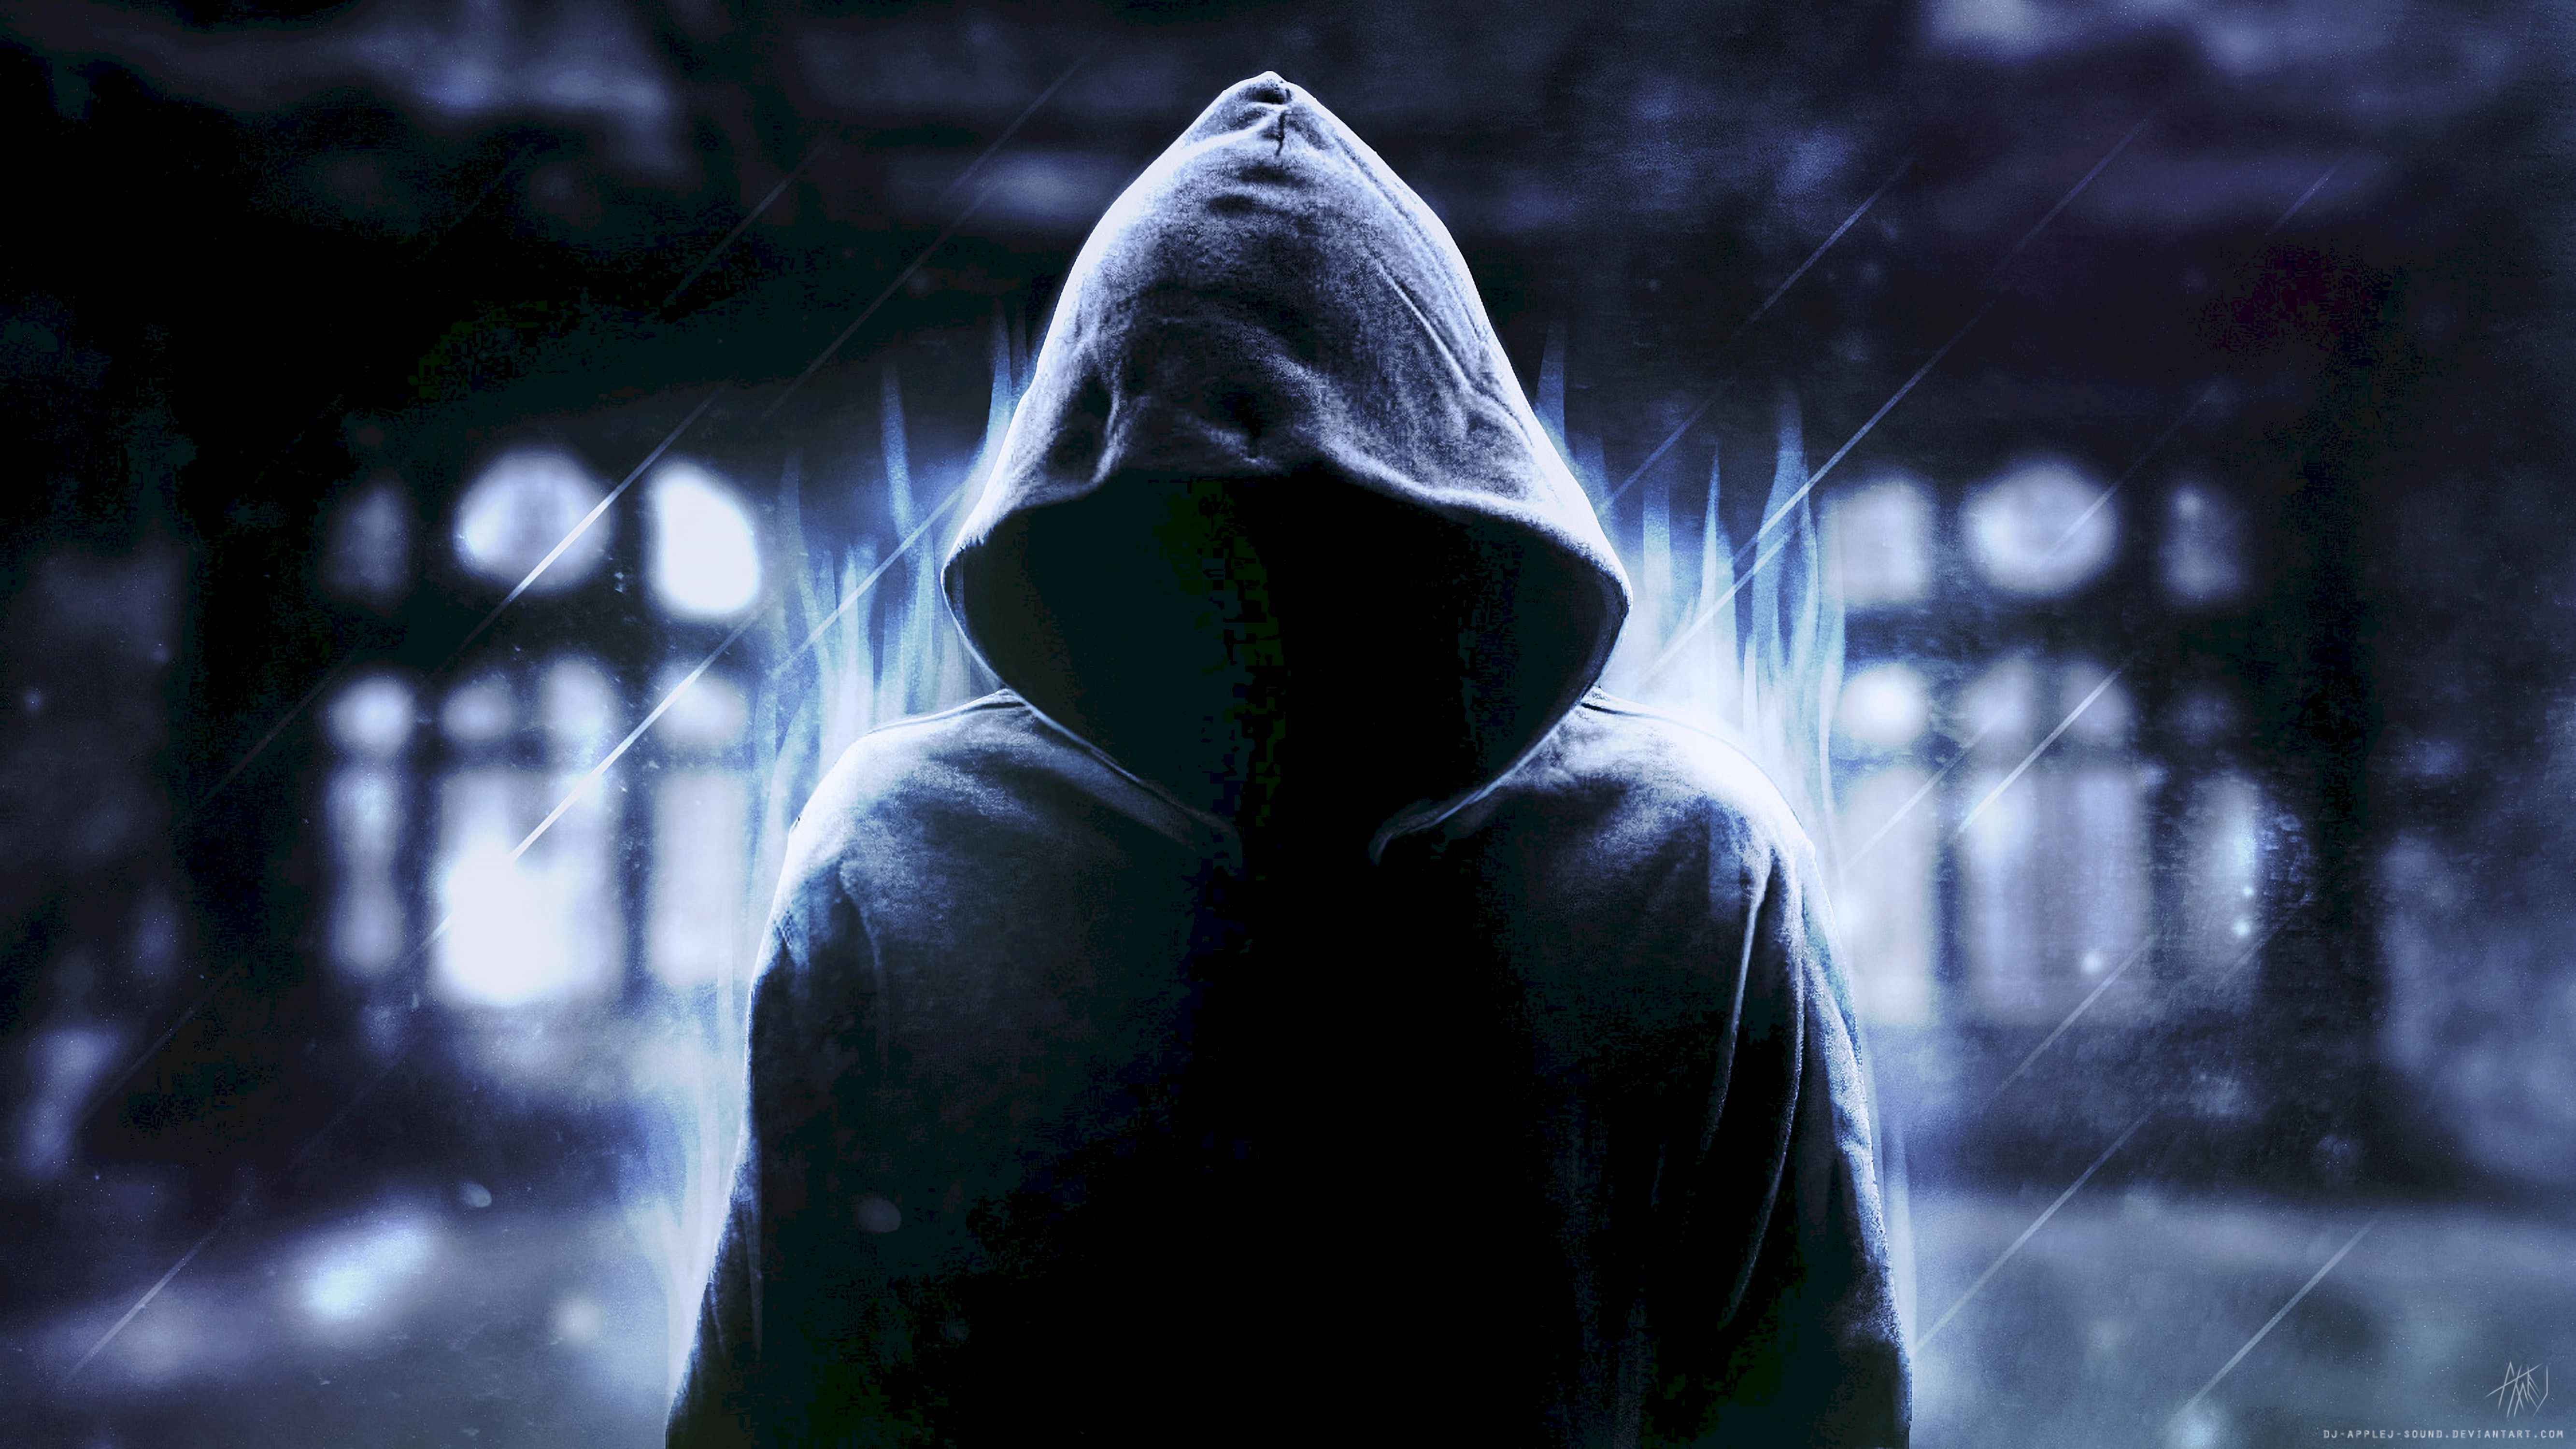 hoodie guy 5k wallpapers anonymus 4k hd mask deviantart photography backgrounds